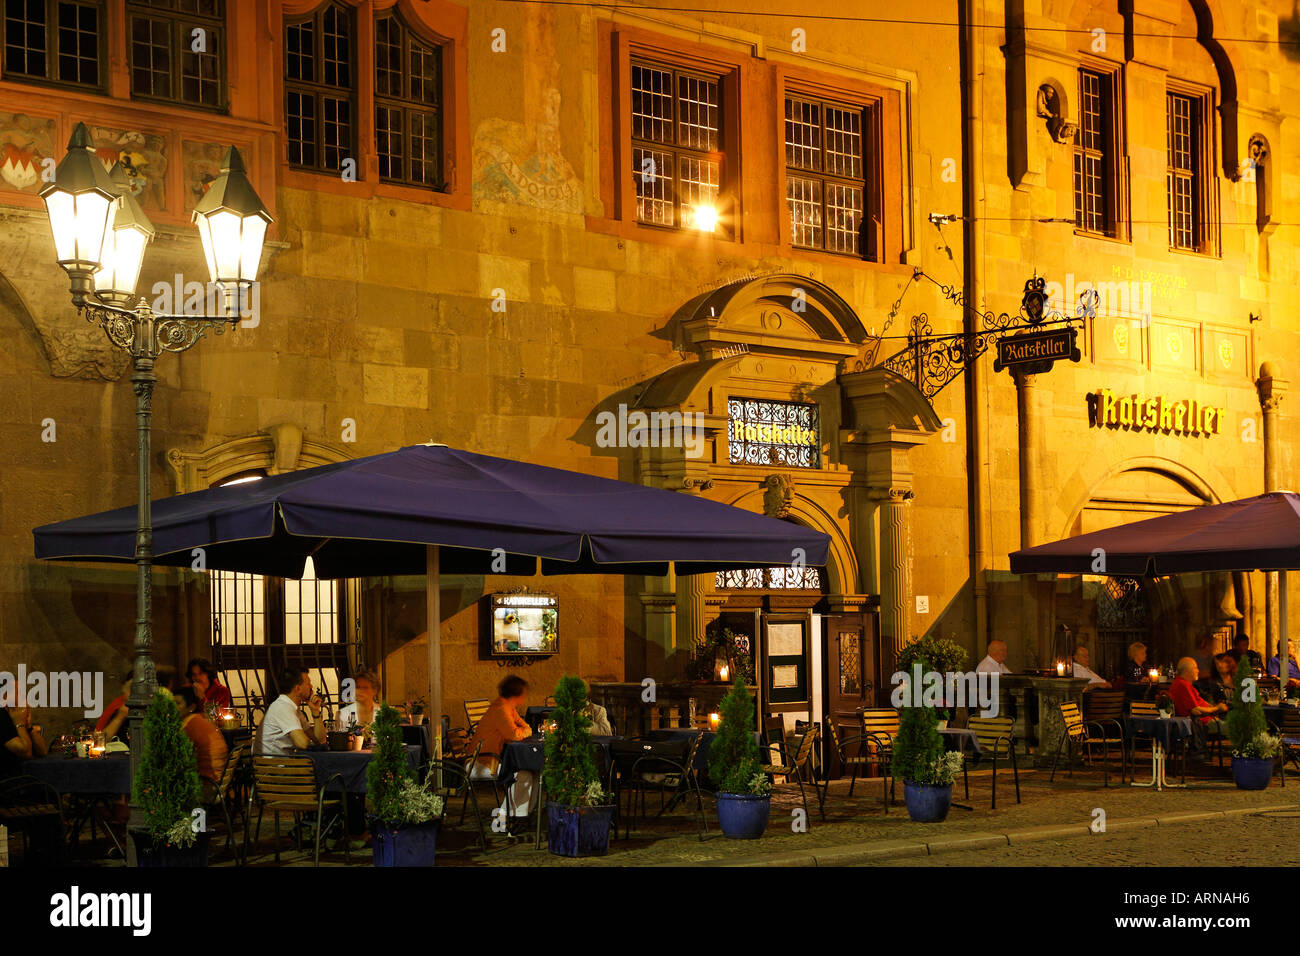 Guests of the restaurant Ratskeller enjoy the warm summer evening, Wuerzburg, Bavaria, Germany - Stock Image